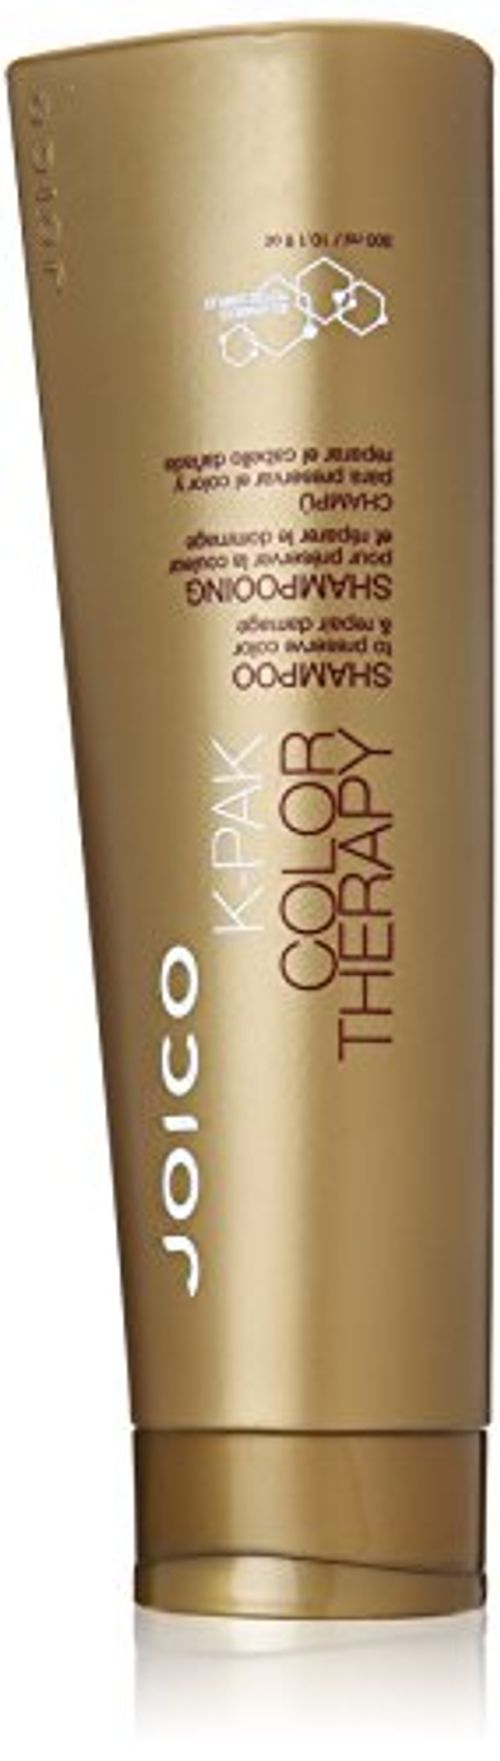 photo Wallpaper of Joico-Joico K Pak Color Therapy Shampoo, 1er Pack (1 X 300 Ml)-